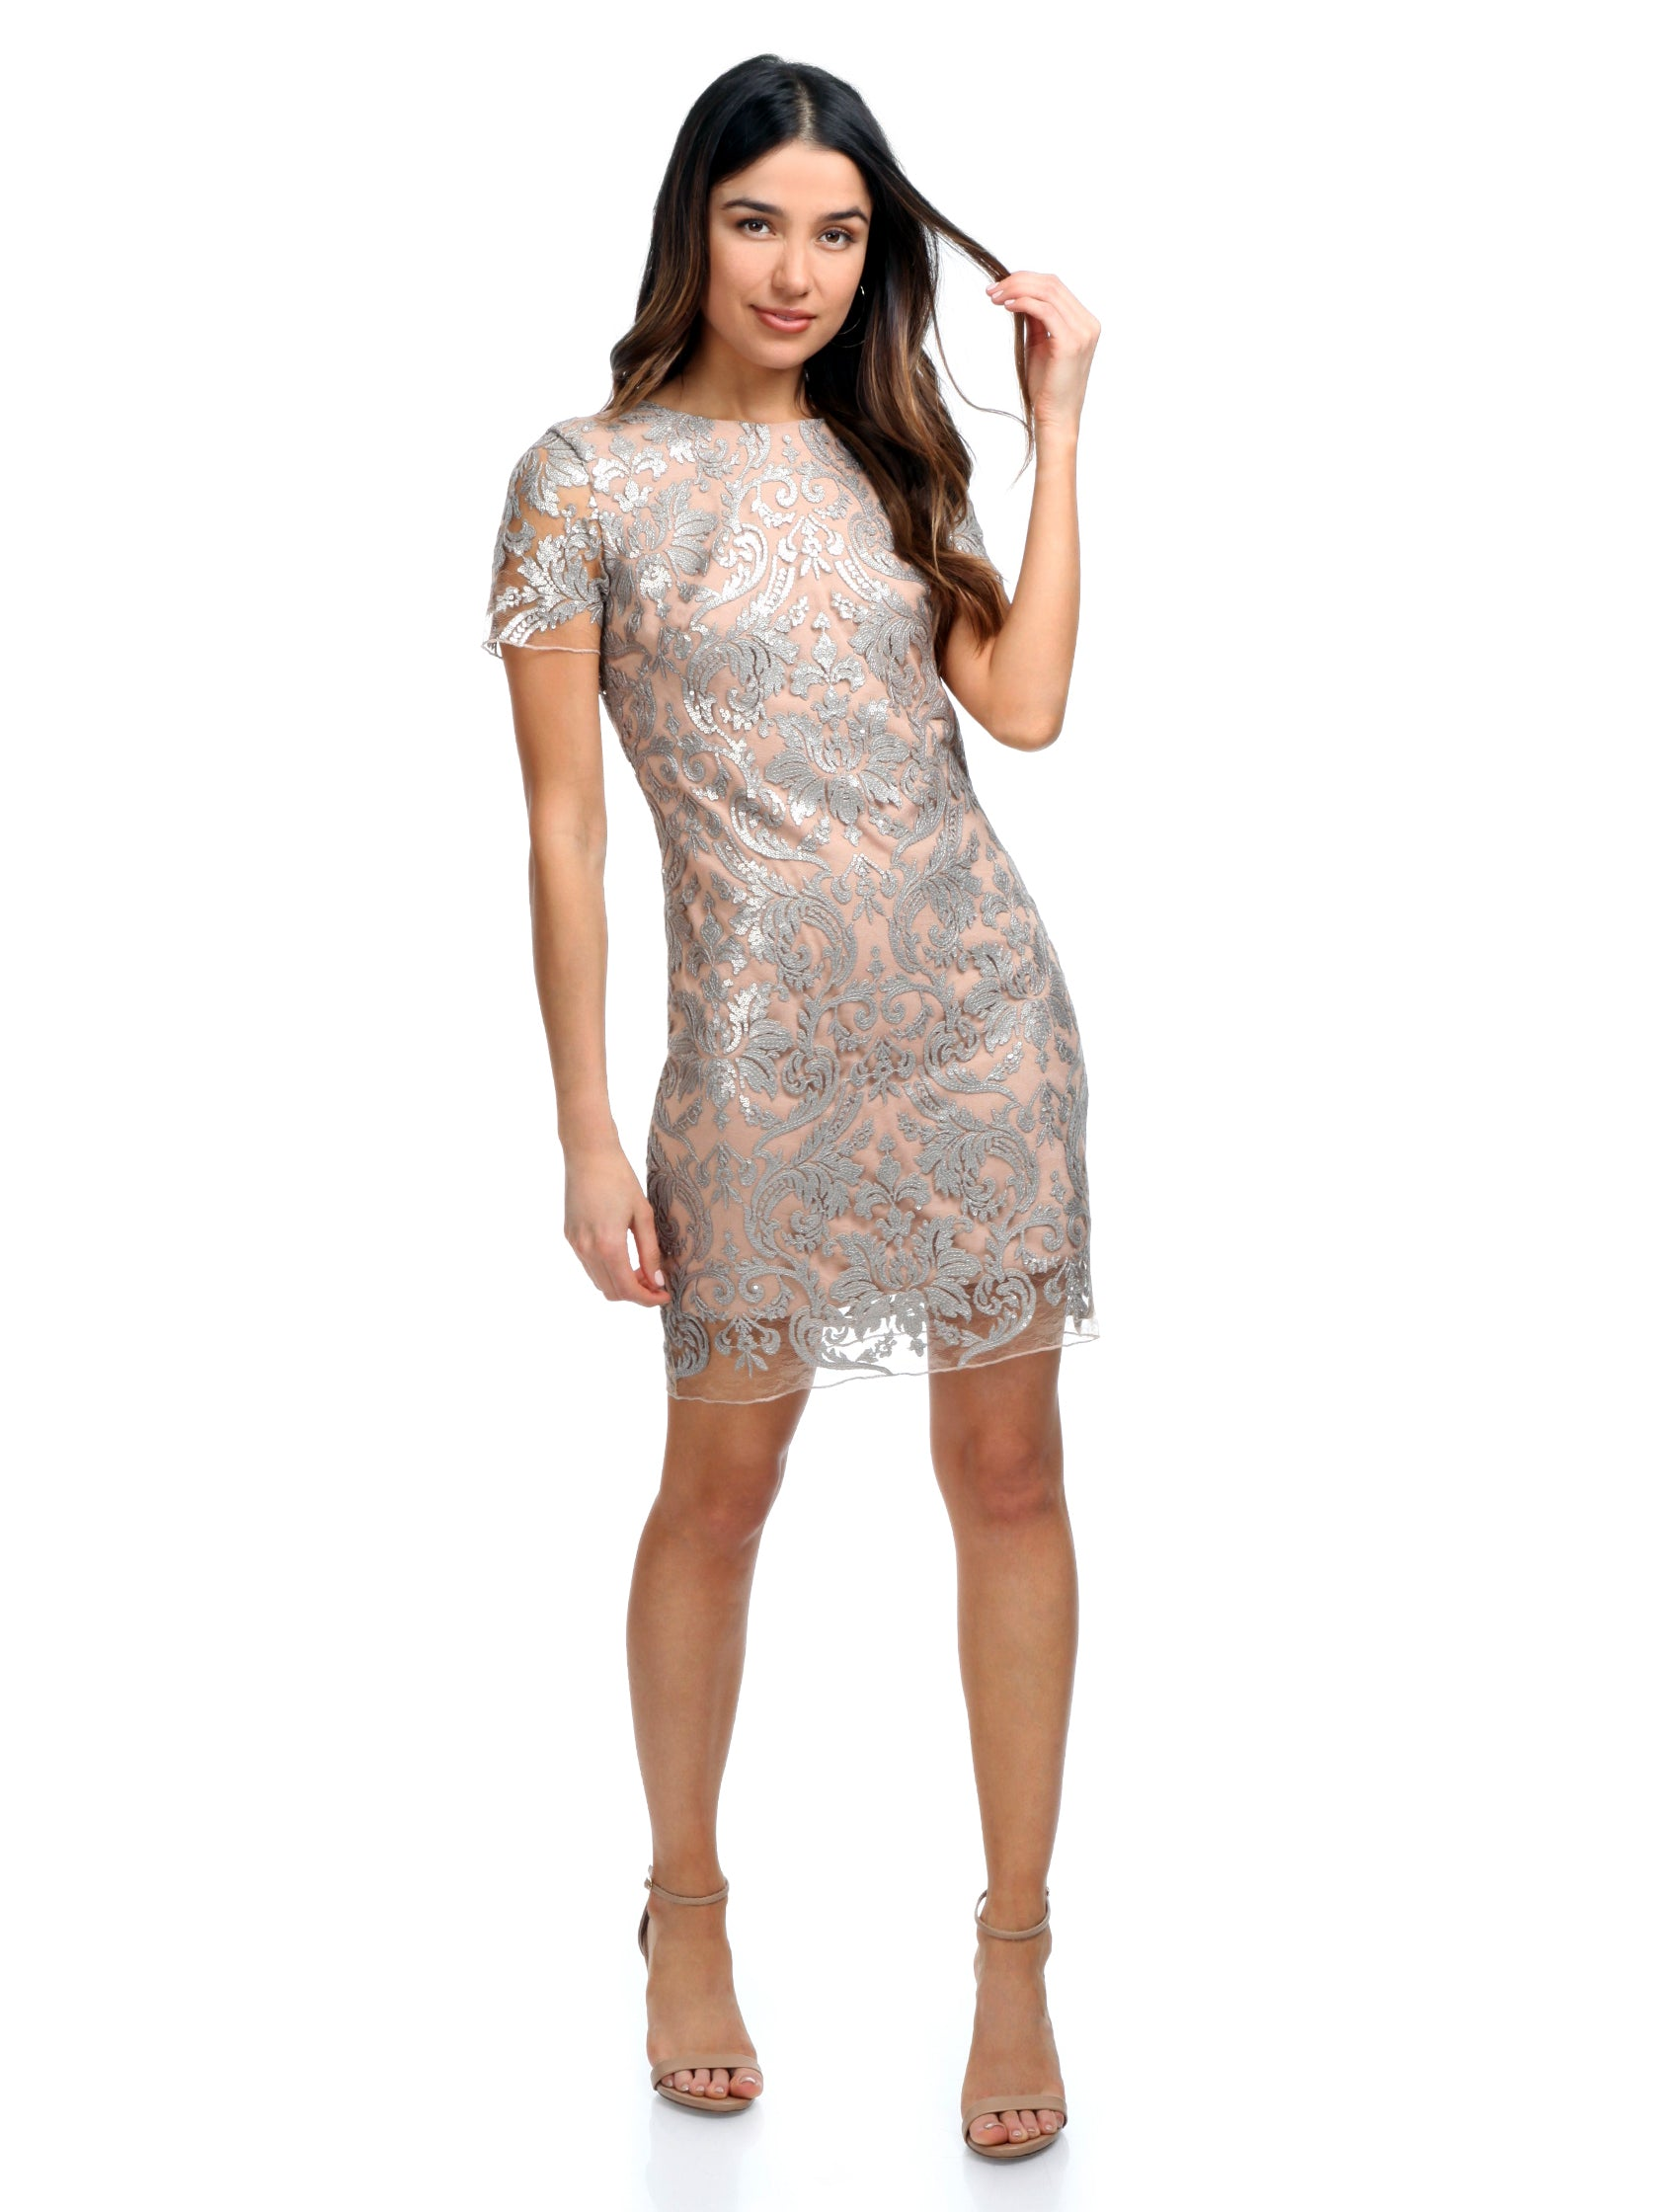 Girl outfit in a dress rental from Dress the Population called Megan Sequin Lace Shift Dress